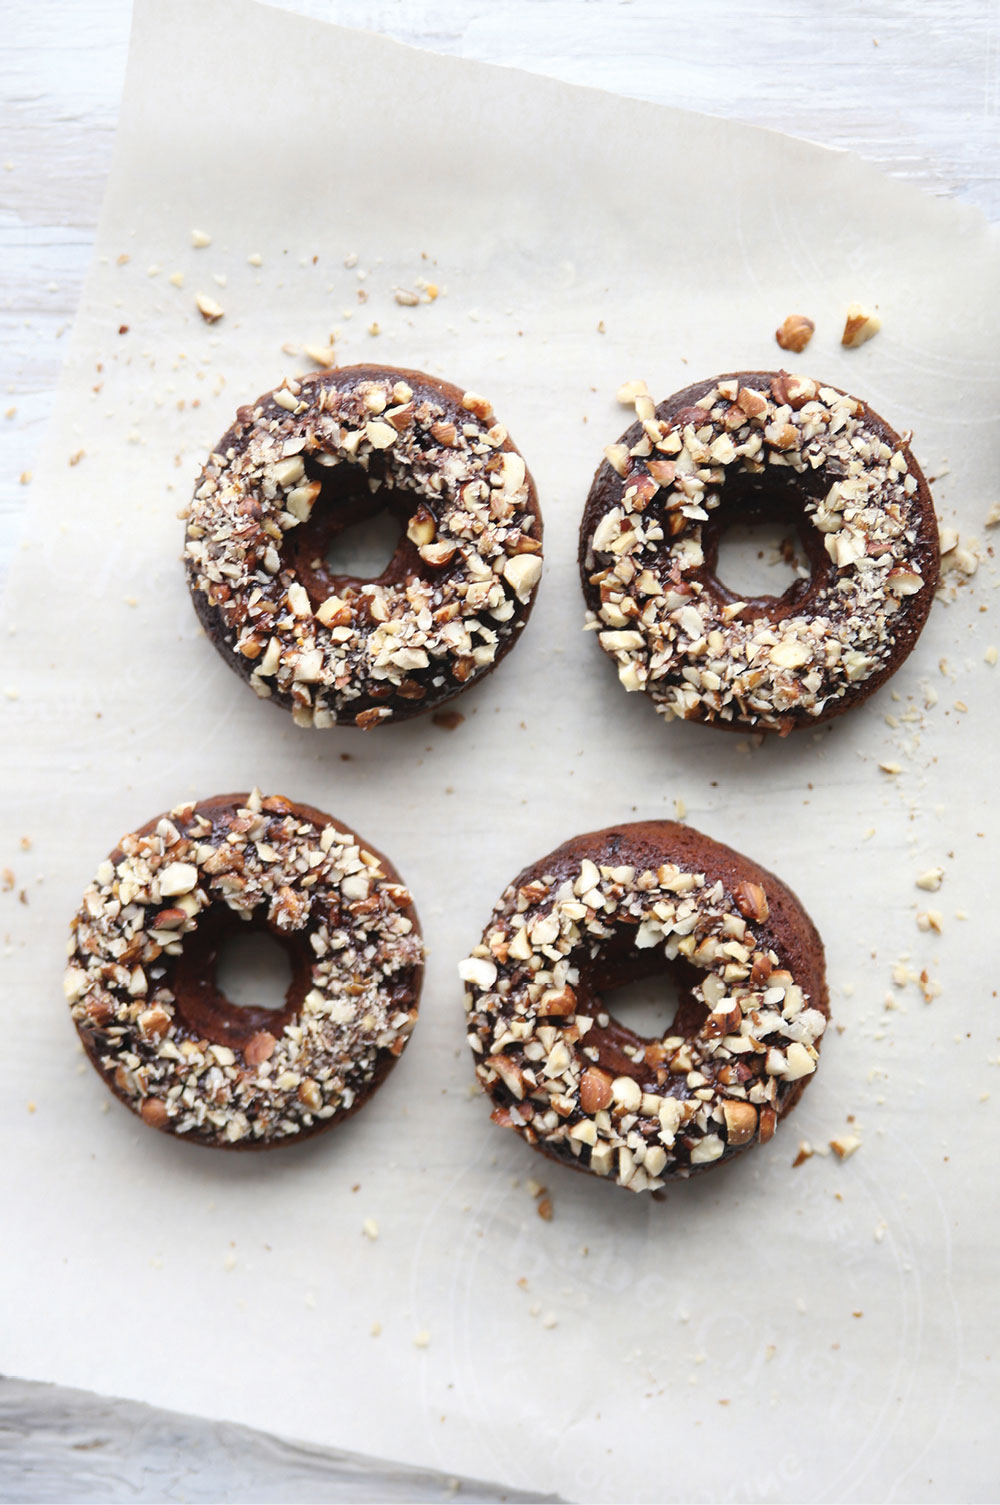 hazelnut-chocolate-doughnuts-deliciously-ella-pure-ella-leche4